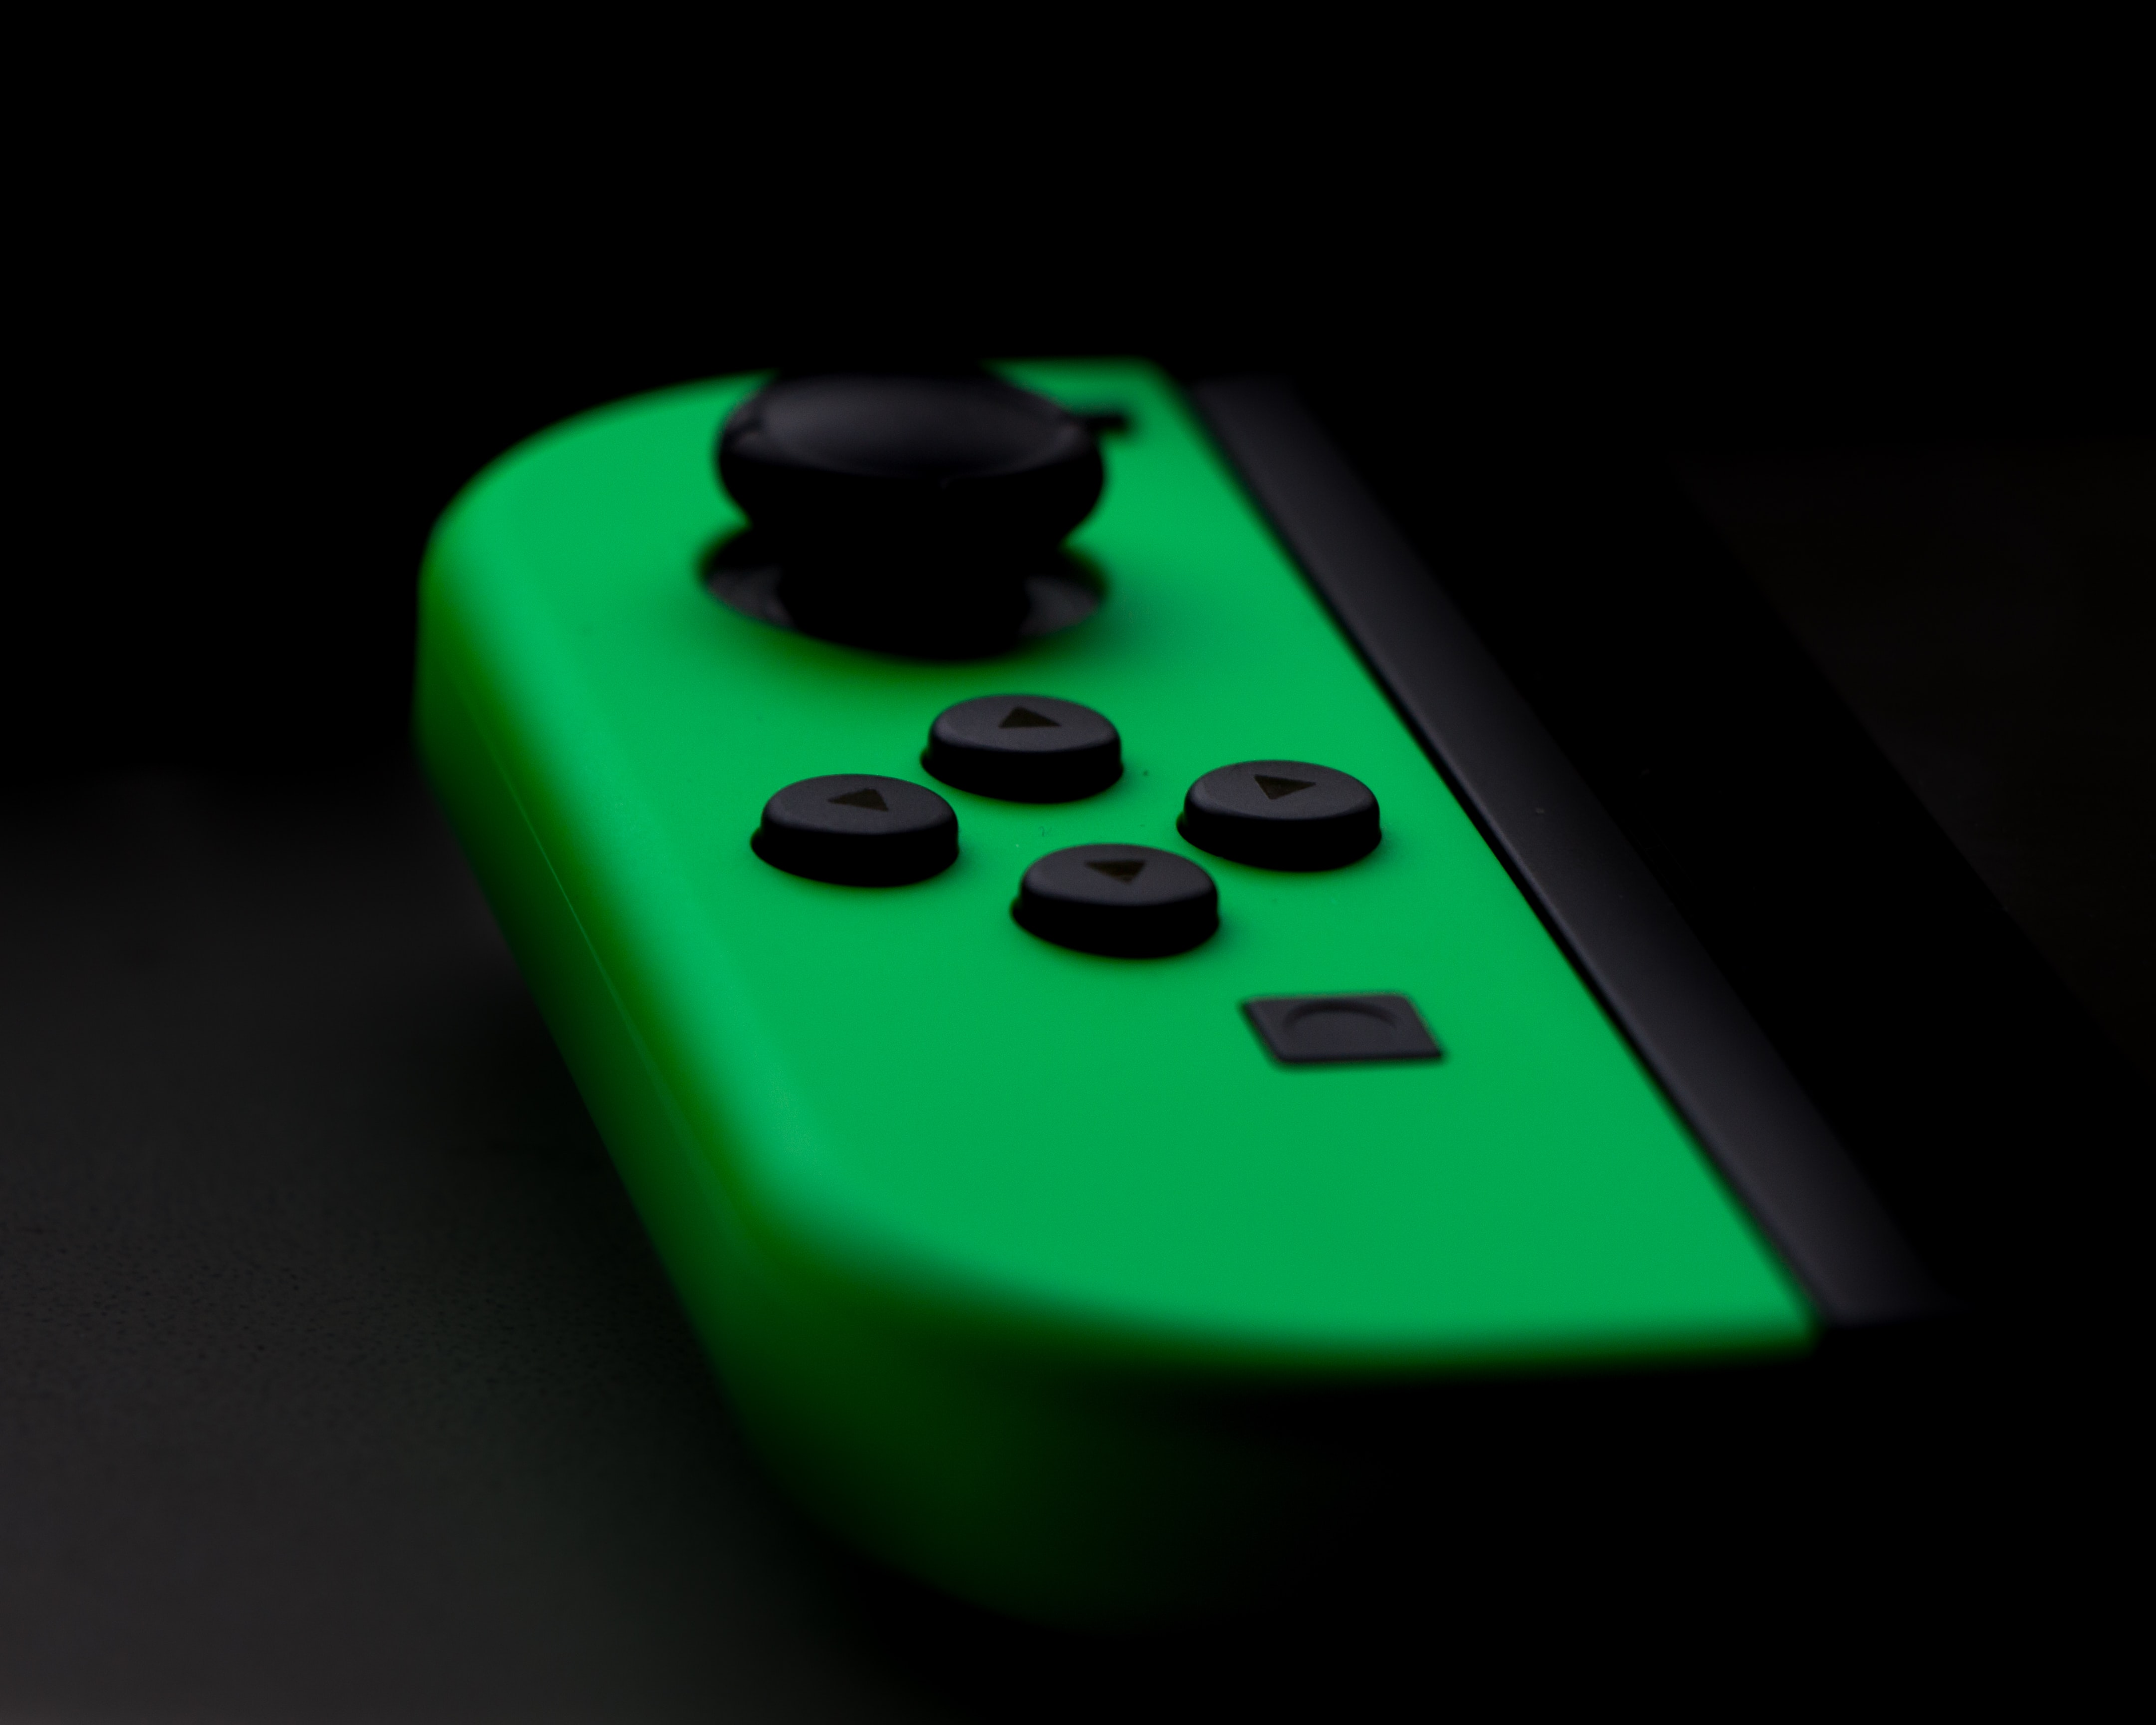 Nintendo's Joy-Con Drift Woes Continue, Another Lawsuit Filed